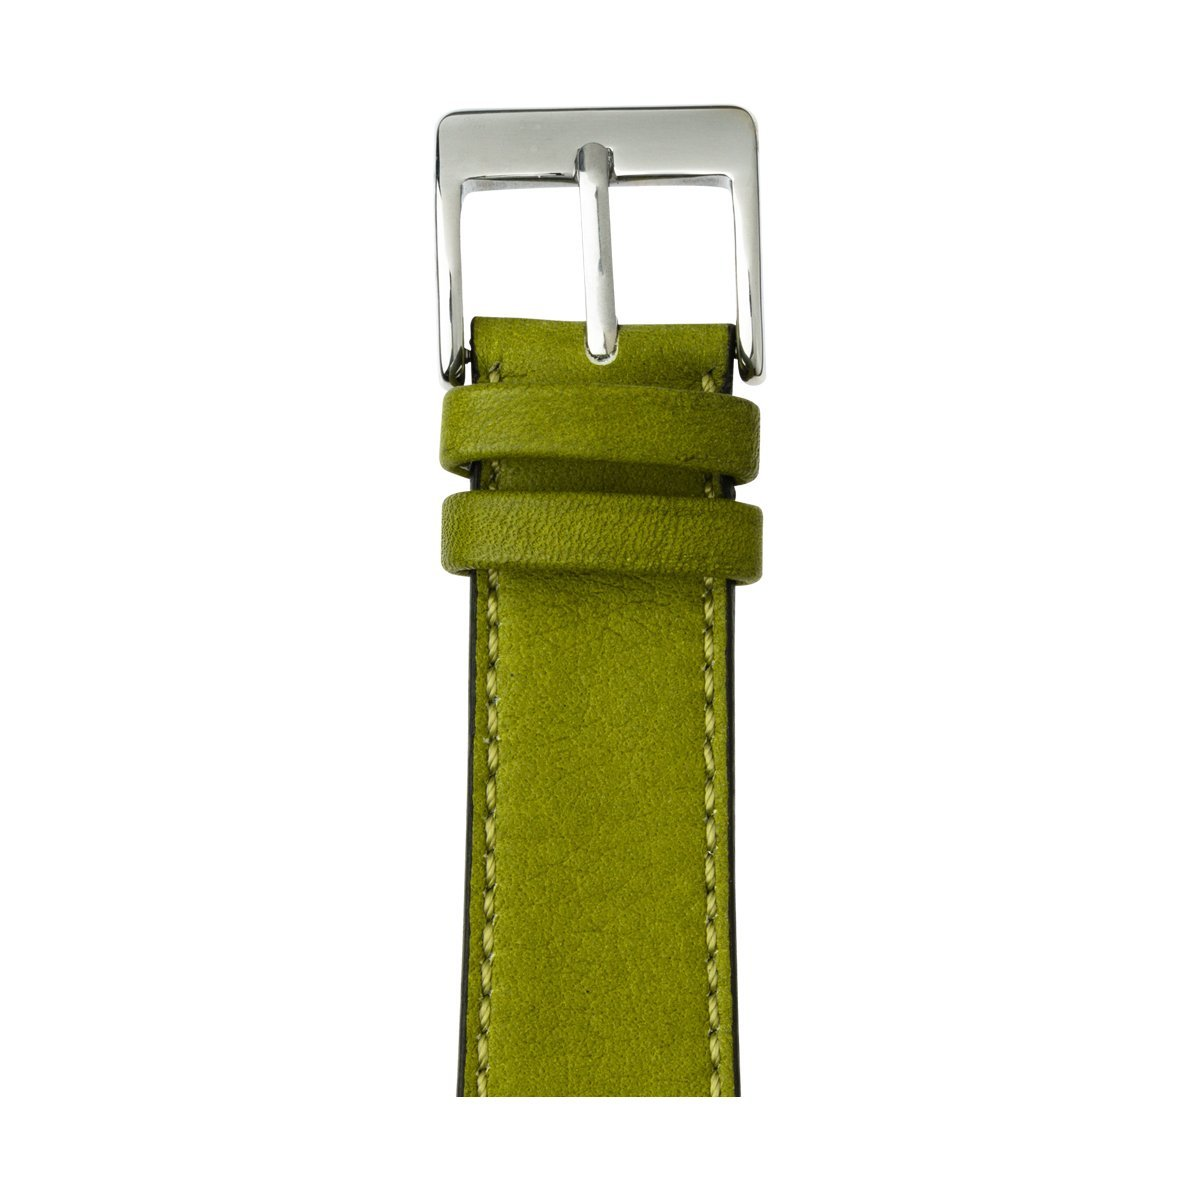 Roobaya | Premium Sauvage Leather Apple Watch Band in Moss Green | Includes Adapters matching the Color of the Apple Watch, Case Color:Stainless Steel, Size:42 mm